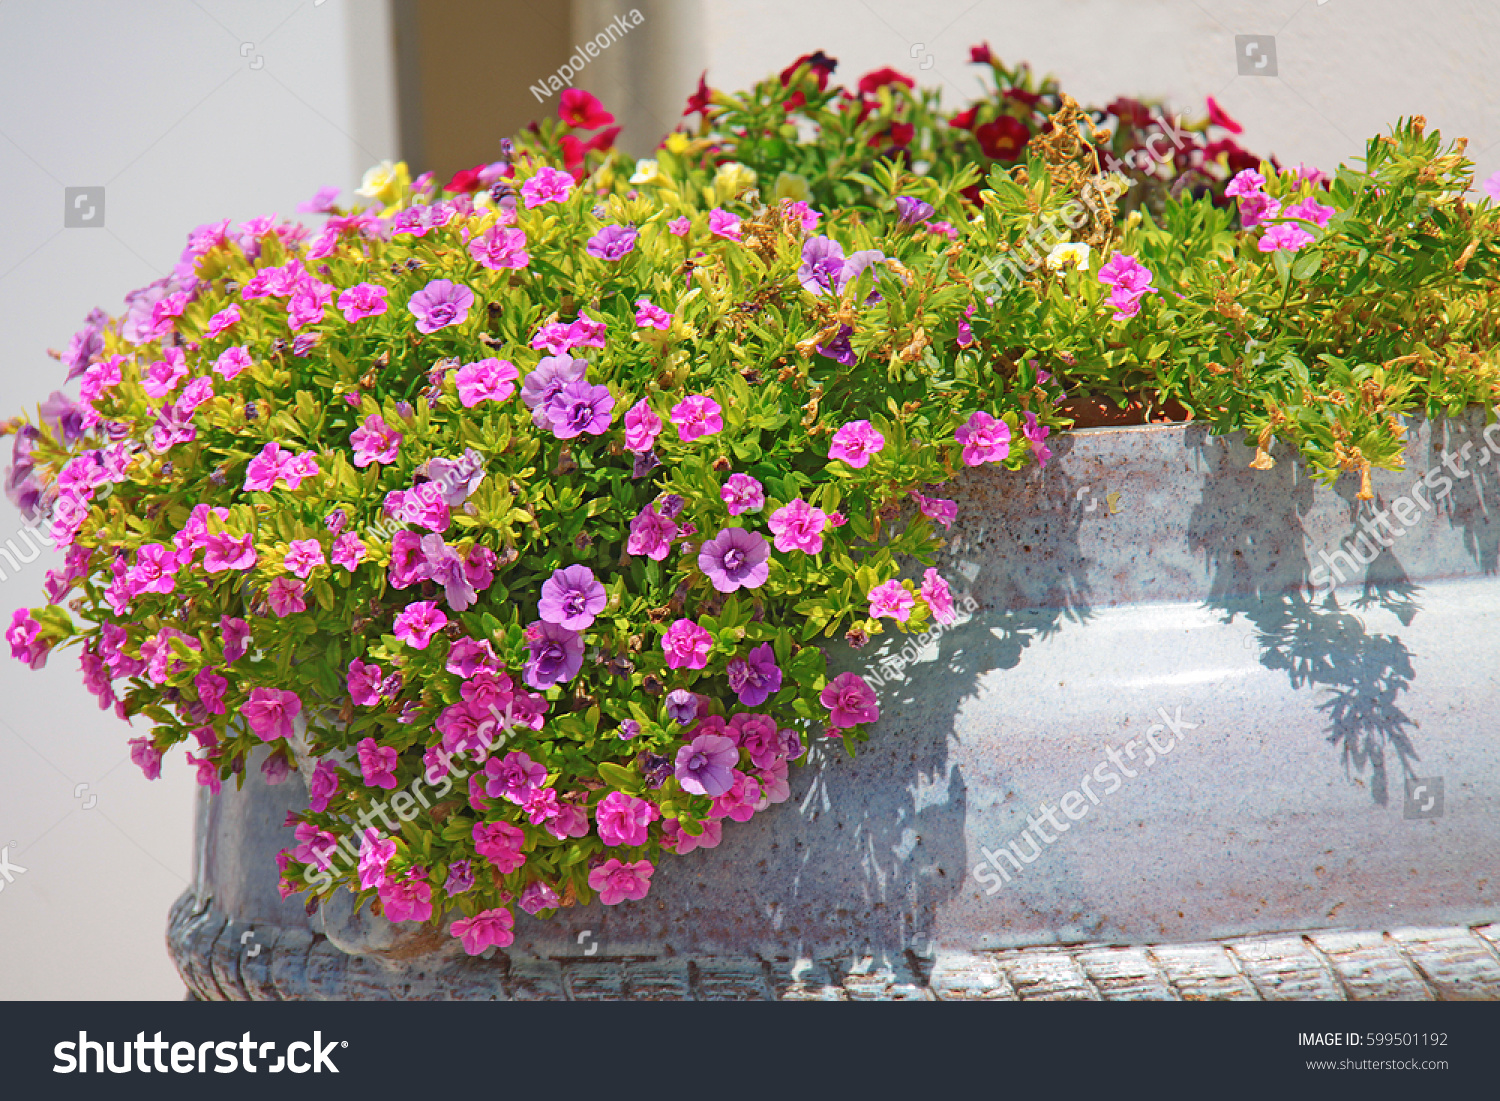 Small pink flowers pot stock photo edit now 599501192 shutterstock small pink flowers in a pot mightylinksfo